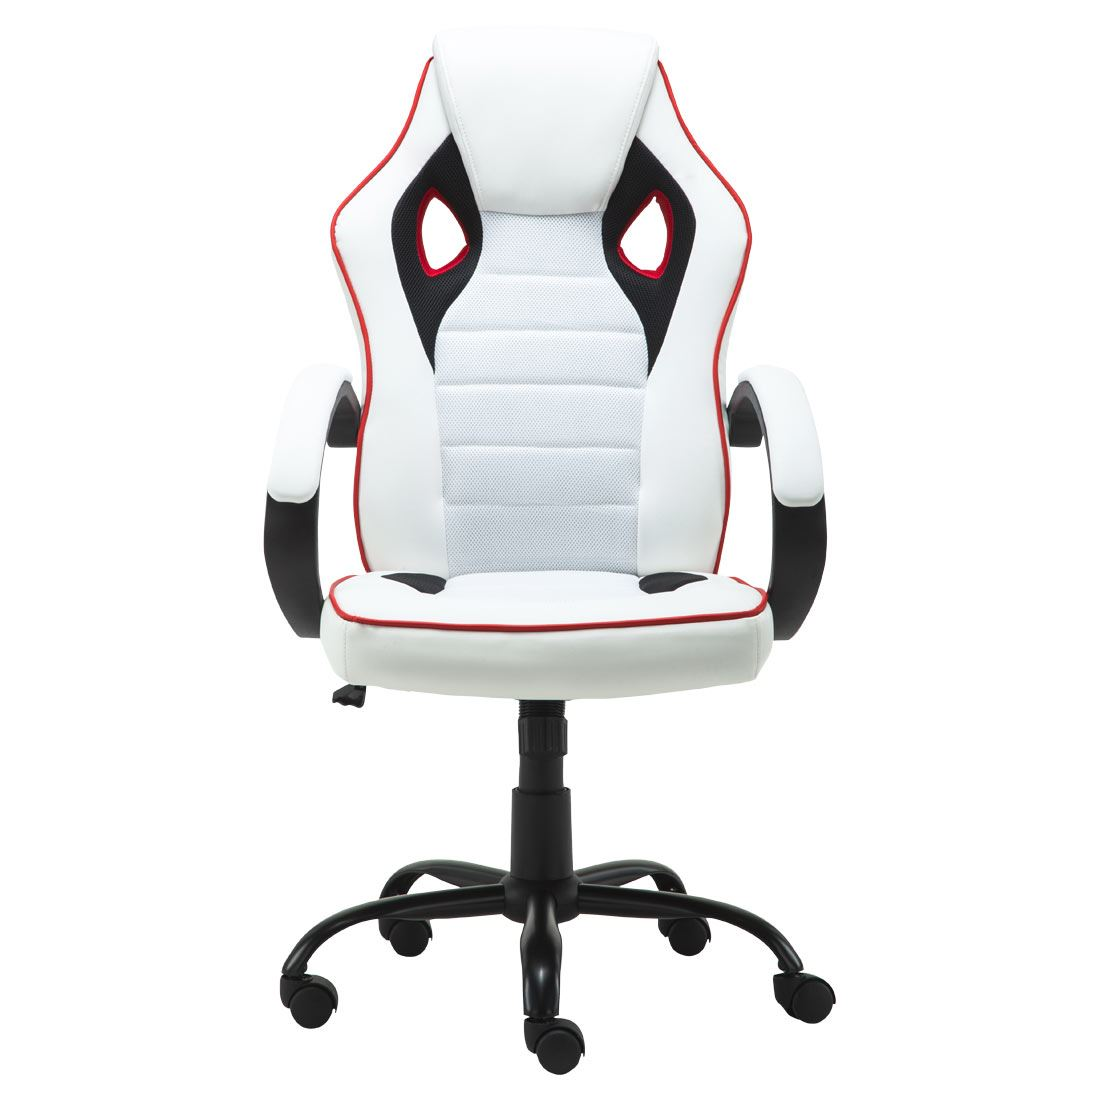 white mesh office chair uk hairdresser dimensions more4homes trax sports racing car